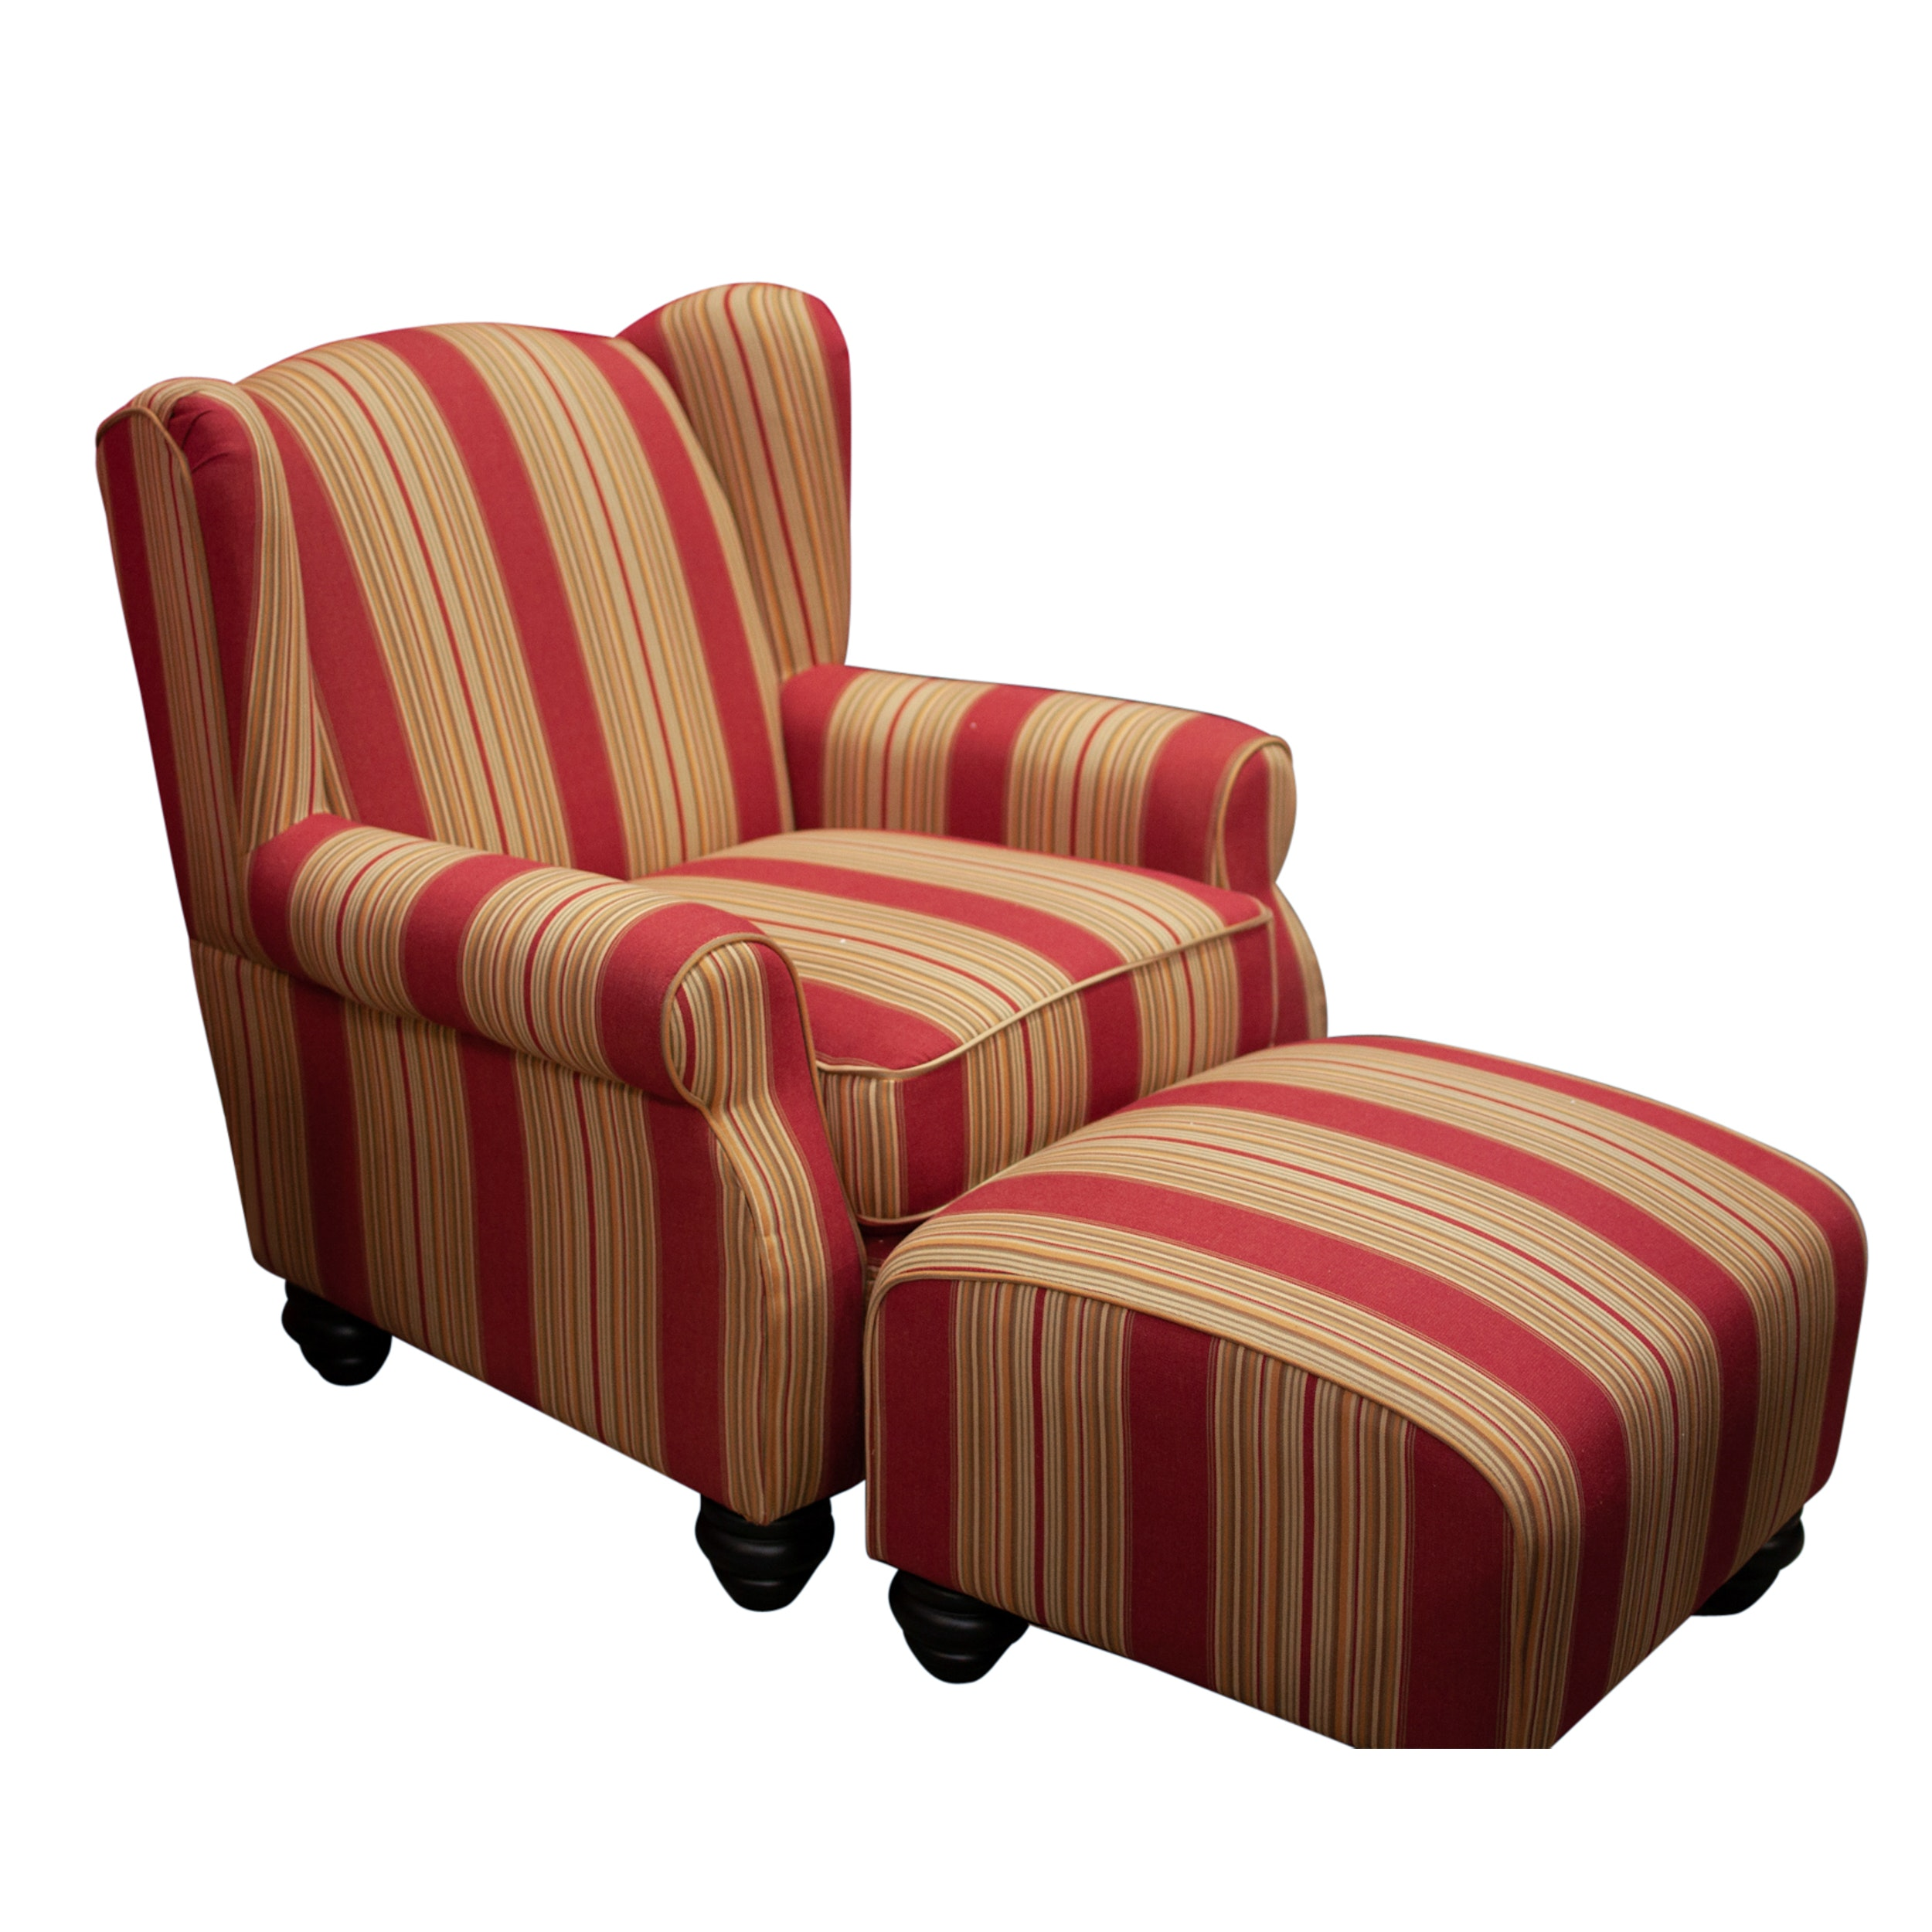 Handy Living Striped Arm Chair and Ottoman, Contemporary